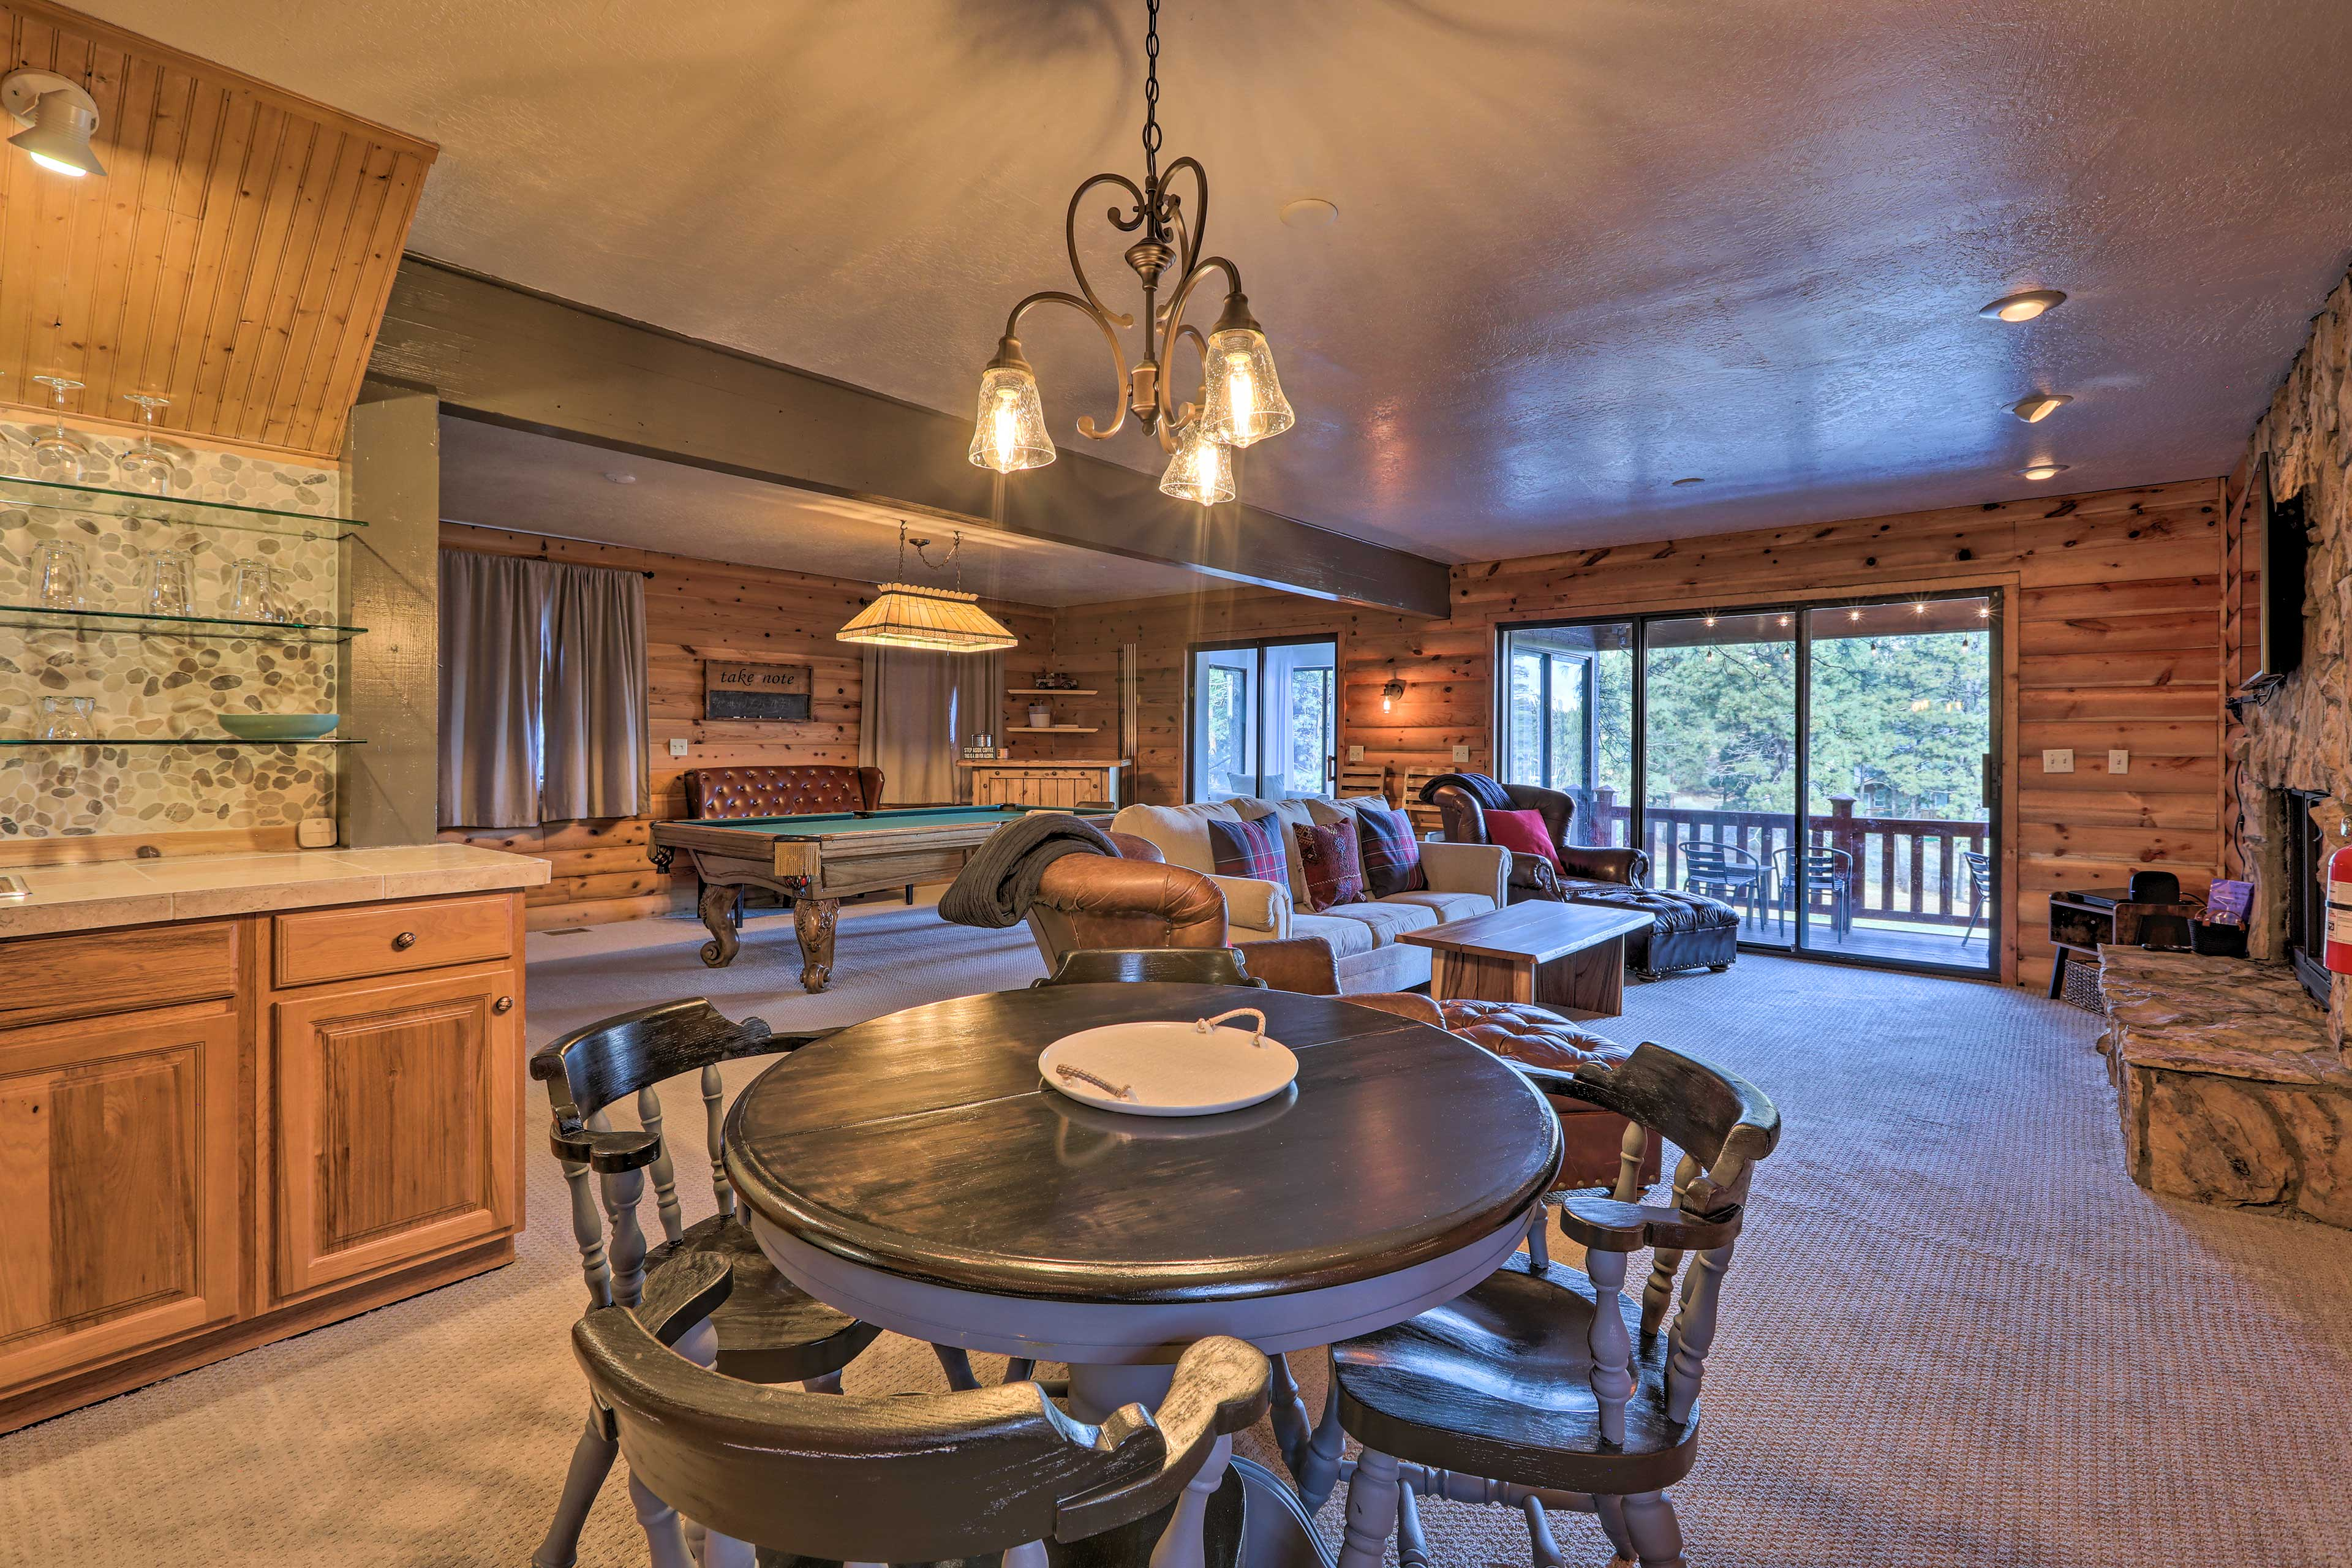 This space has a separate fireplace, mini-fridge, and a wet bar.